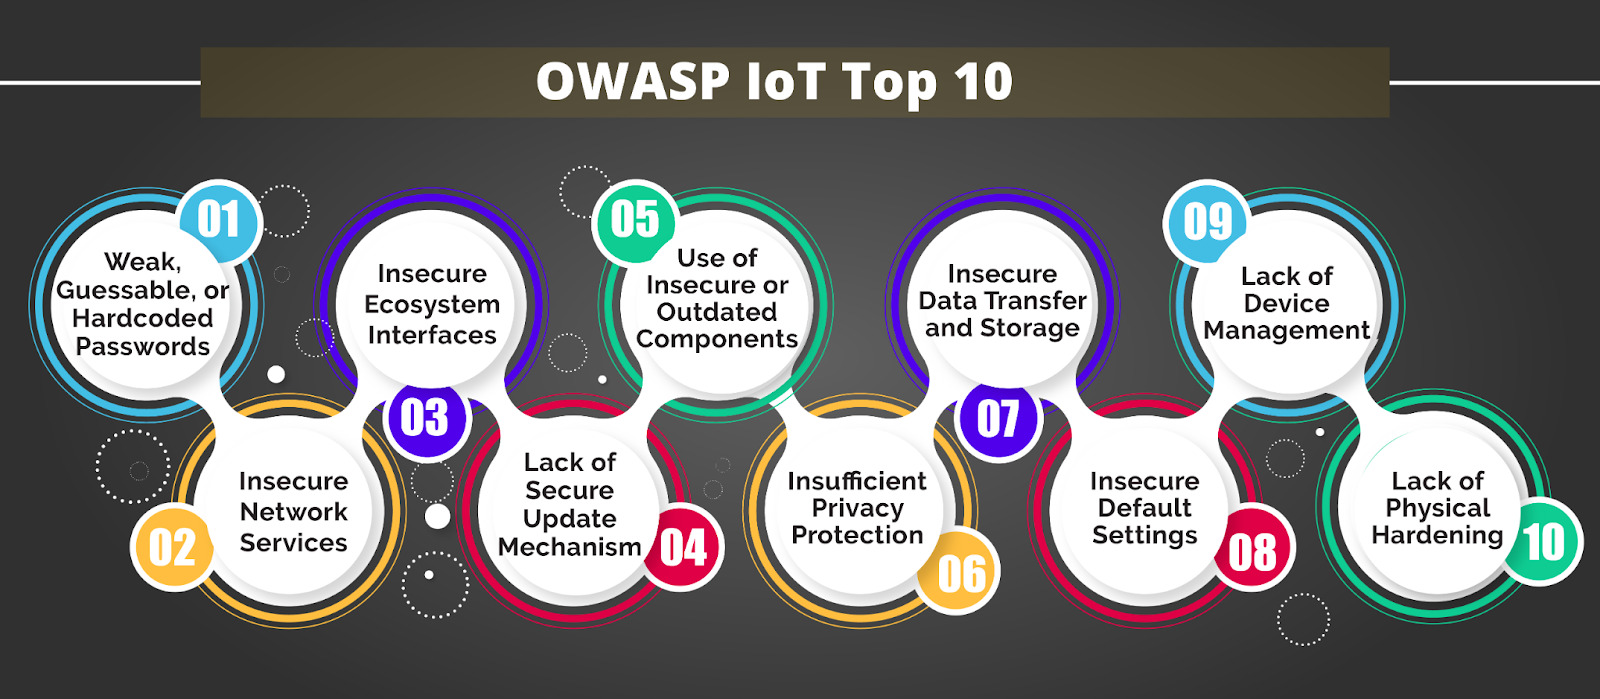 Guide to OWASP IoT Top 10 for proactive security - AppSealing